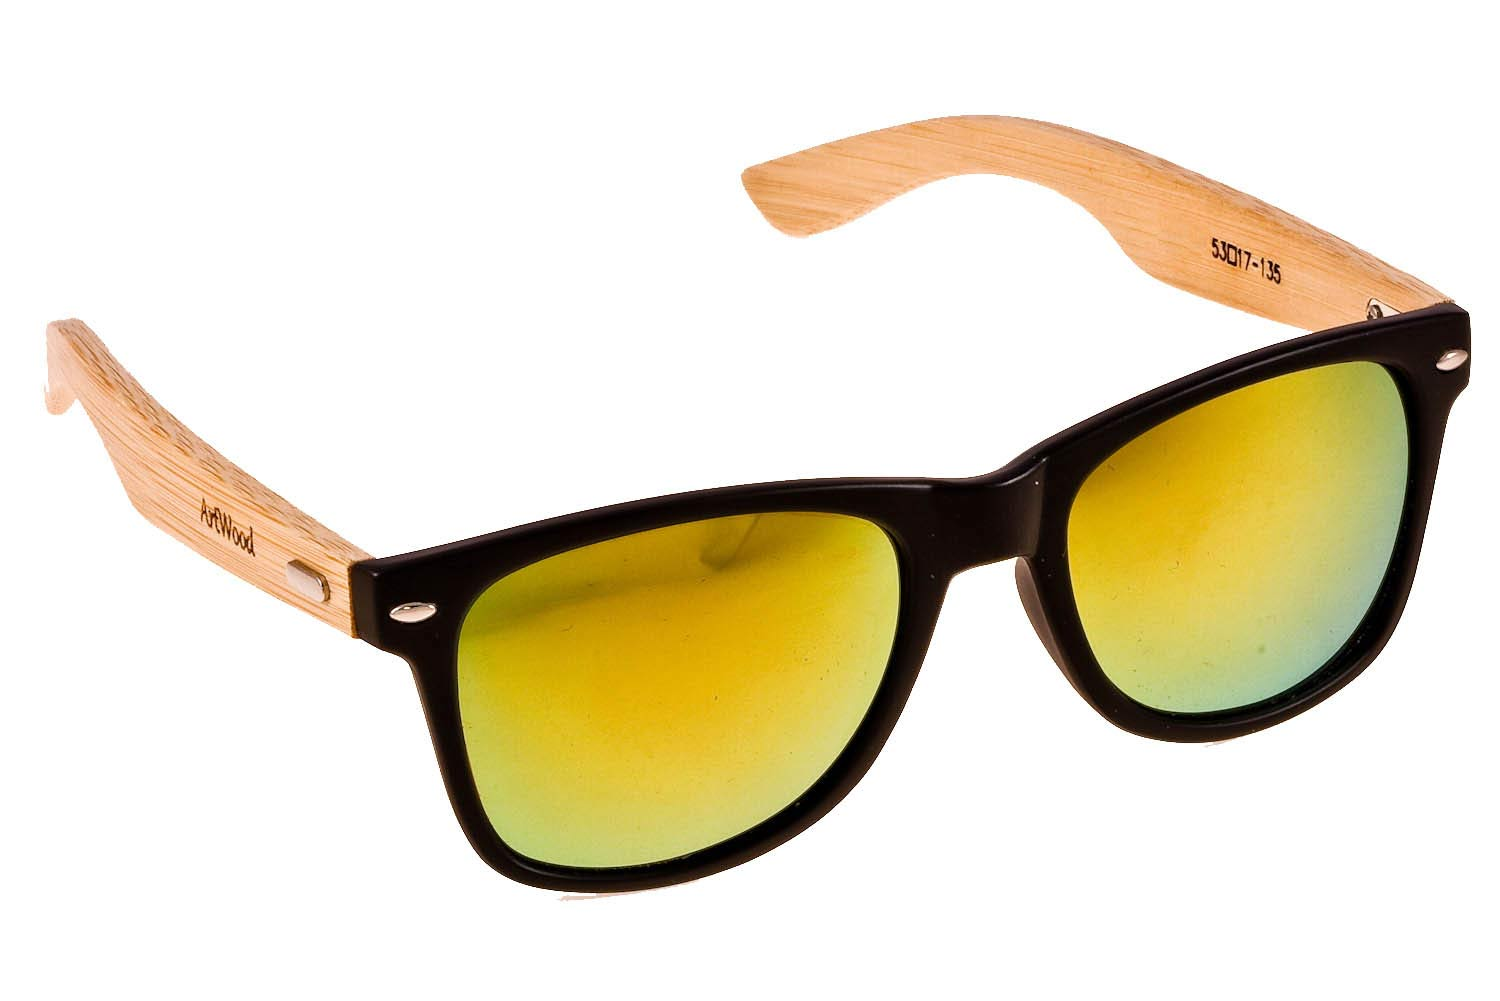 Enlarge Colors In Stock. Add to Cart. Sunglasses Artwood Milano Bambooline  2 MP200 ... 2065c0b2021